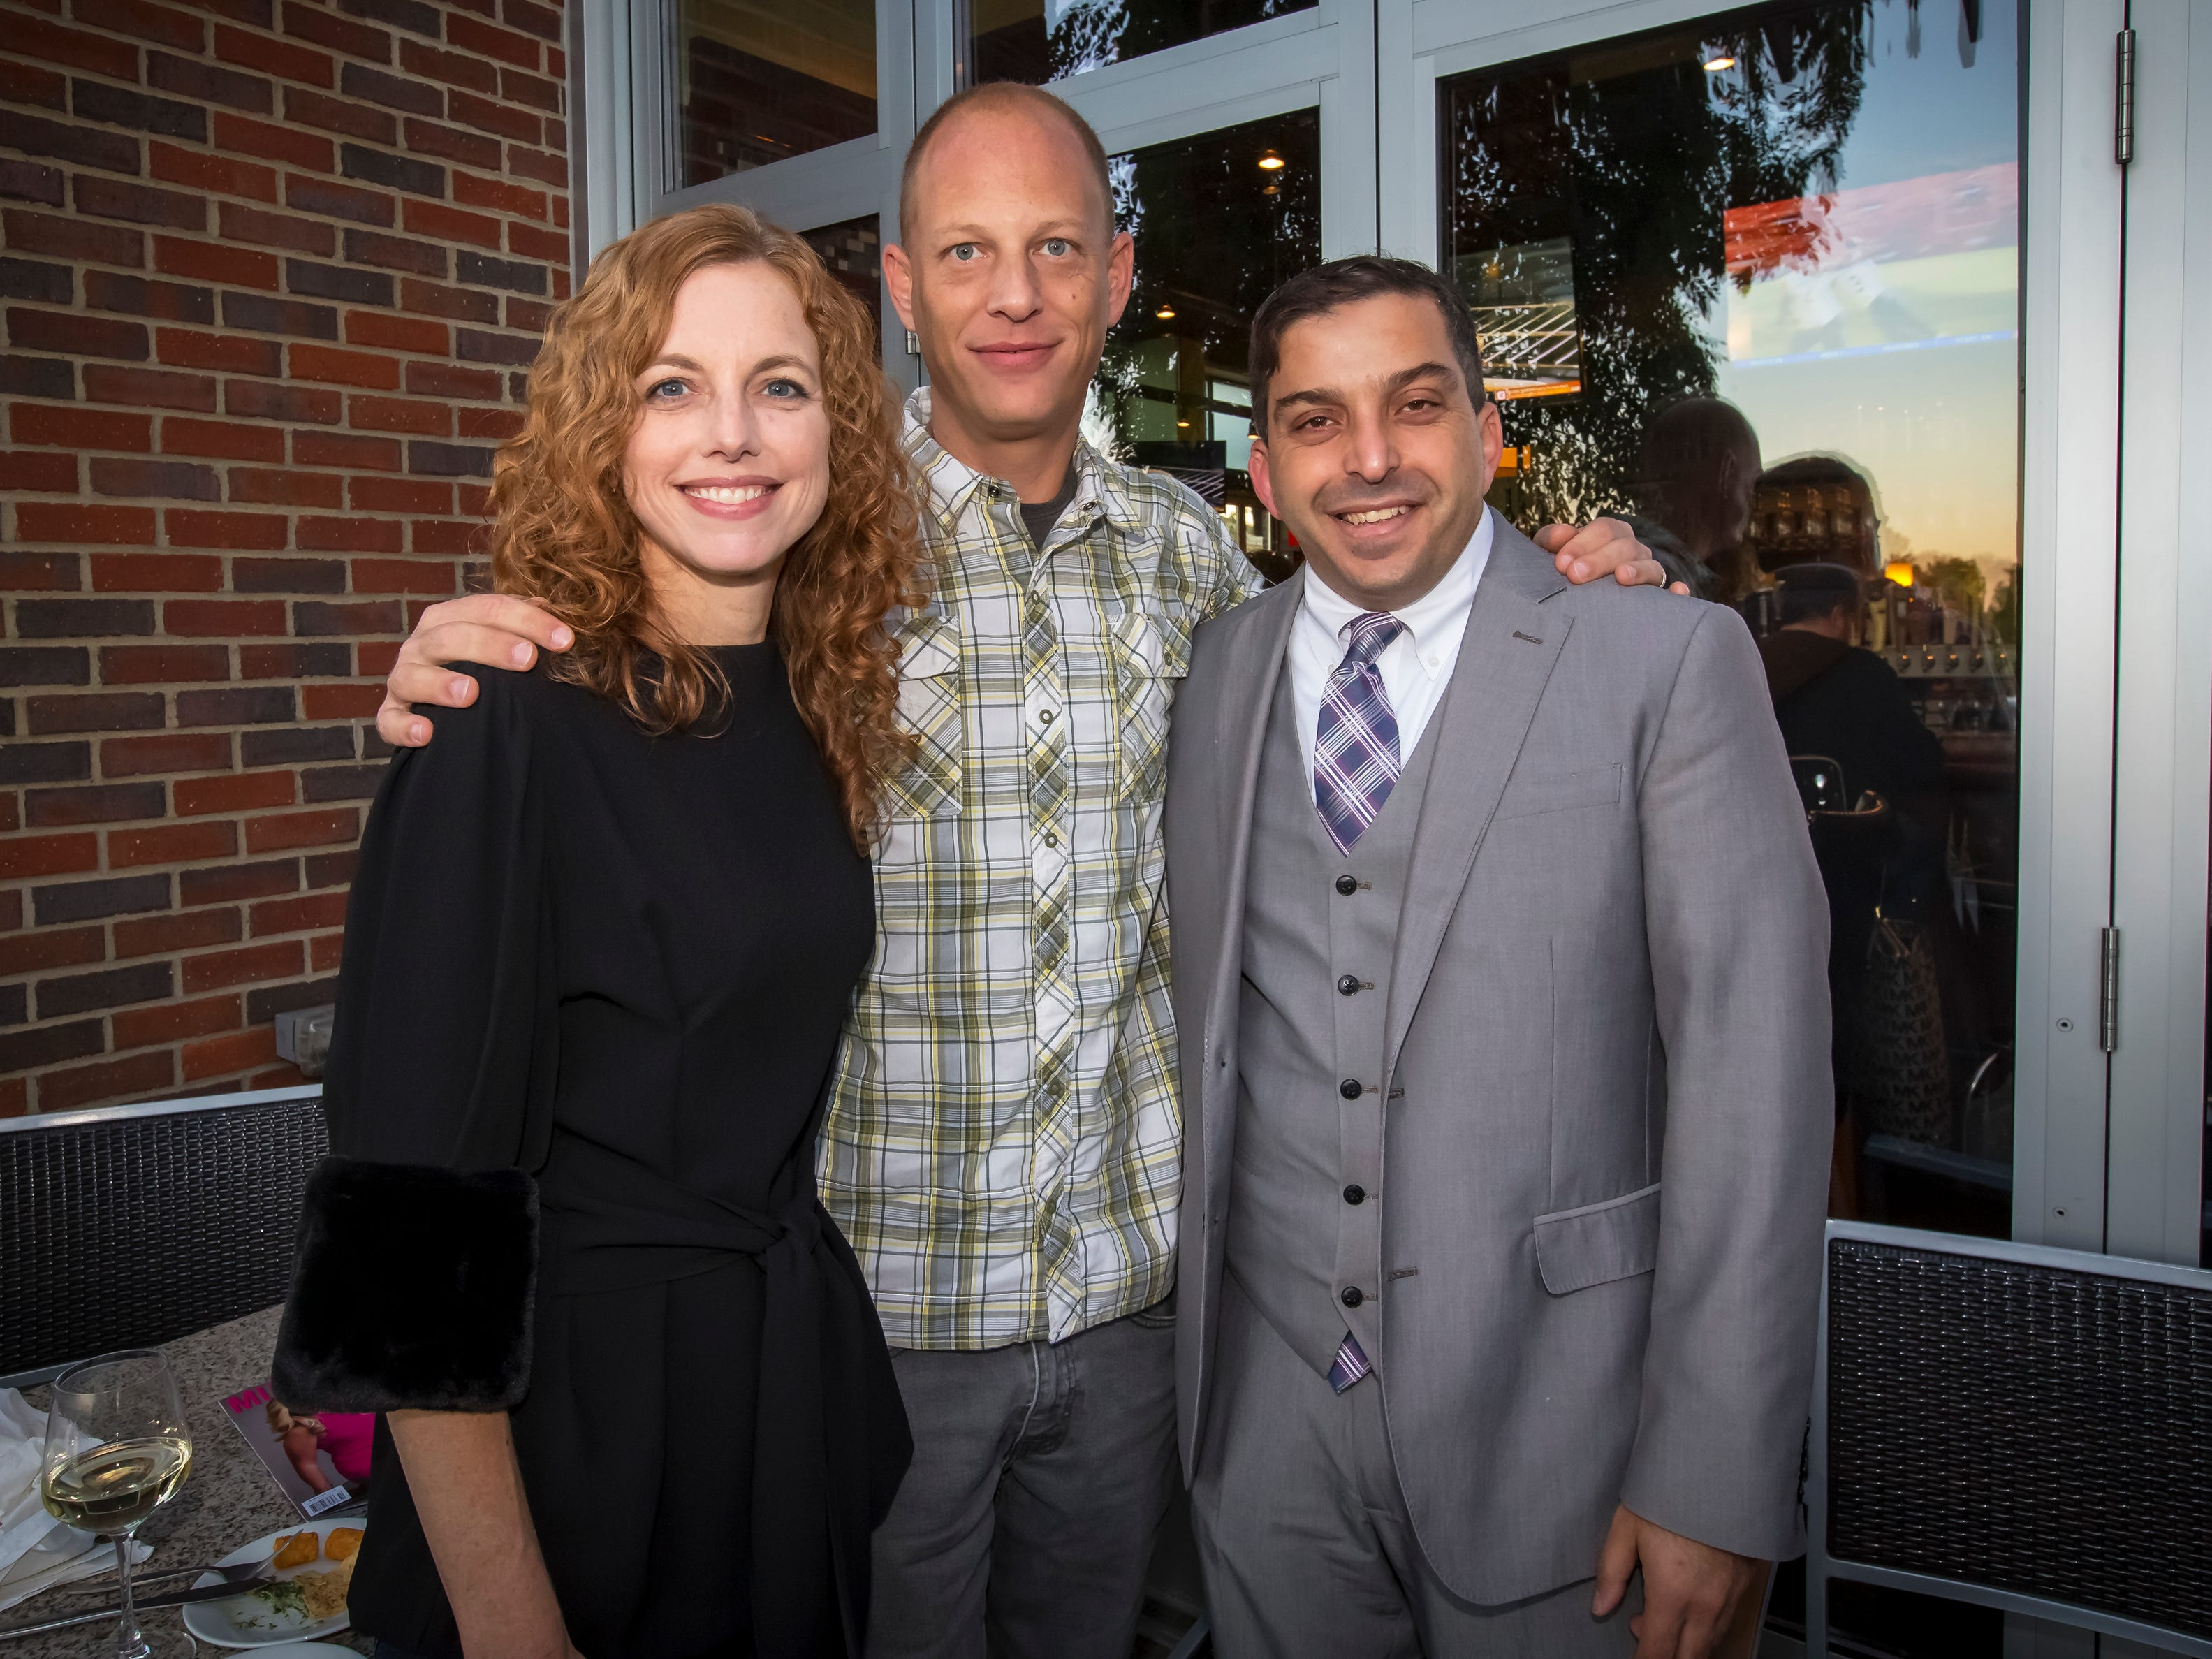 Laura and Andy Harper along with Abdou Kattih at the Murfreesboro Magazine Most Beautiful People event held at Bar Louie.